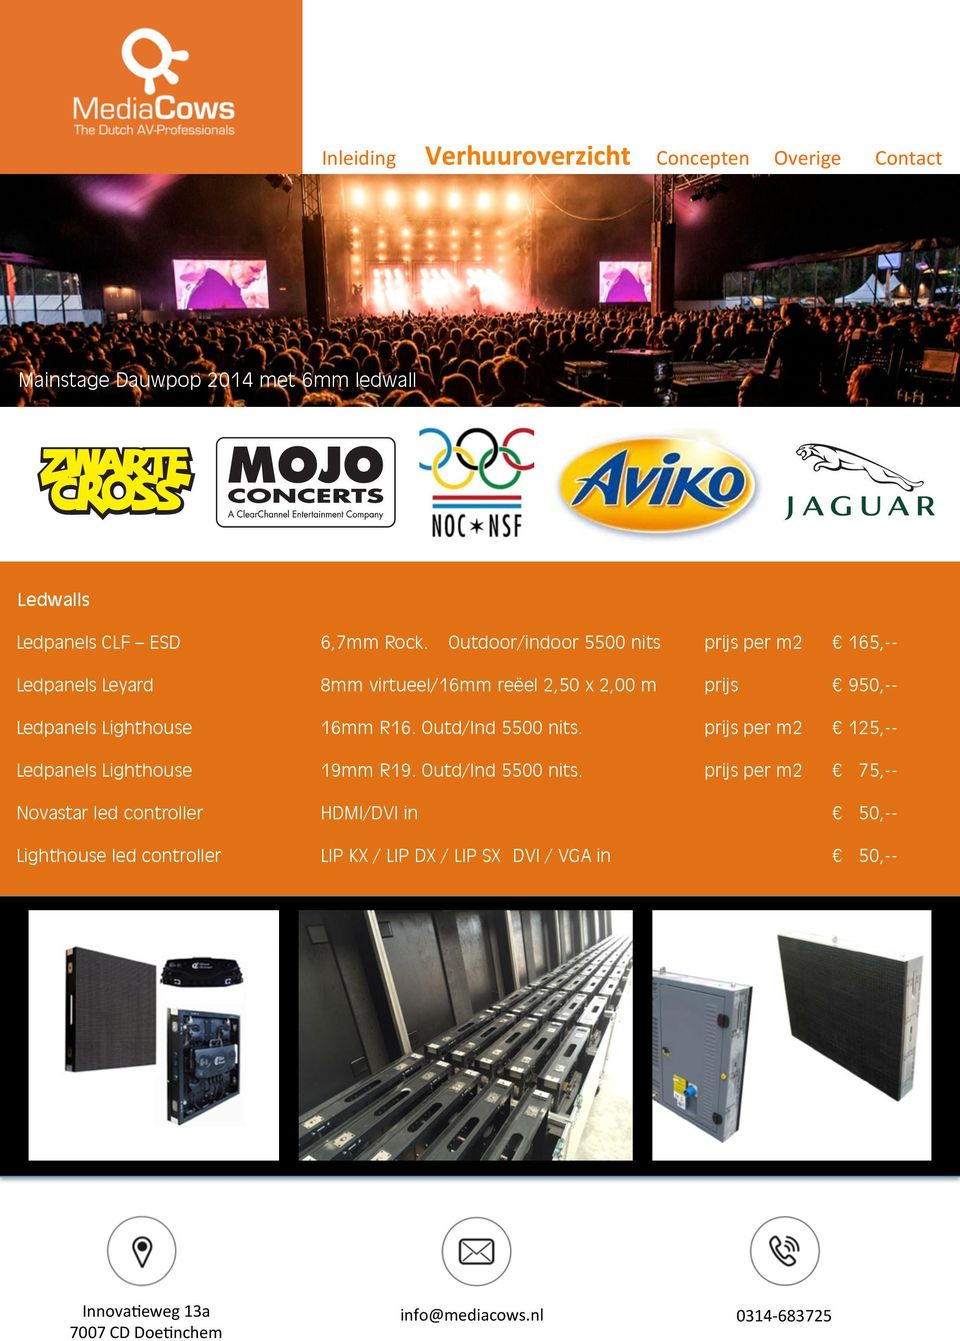 950,-- Ledpanels Lighthouse 16mm R16. Outd/Ind 5500 nits. prijs per m2 125,-- Ledpanels Lighthouse 19mm R19.